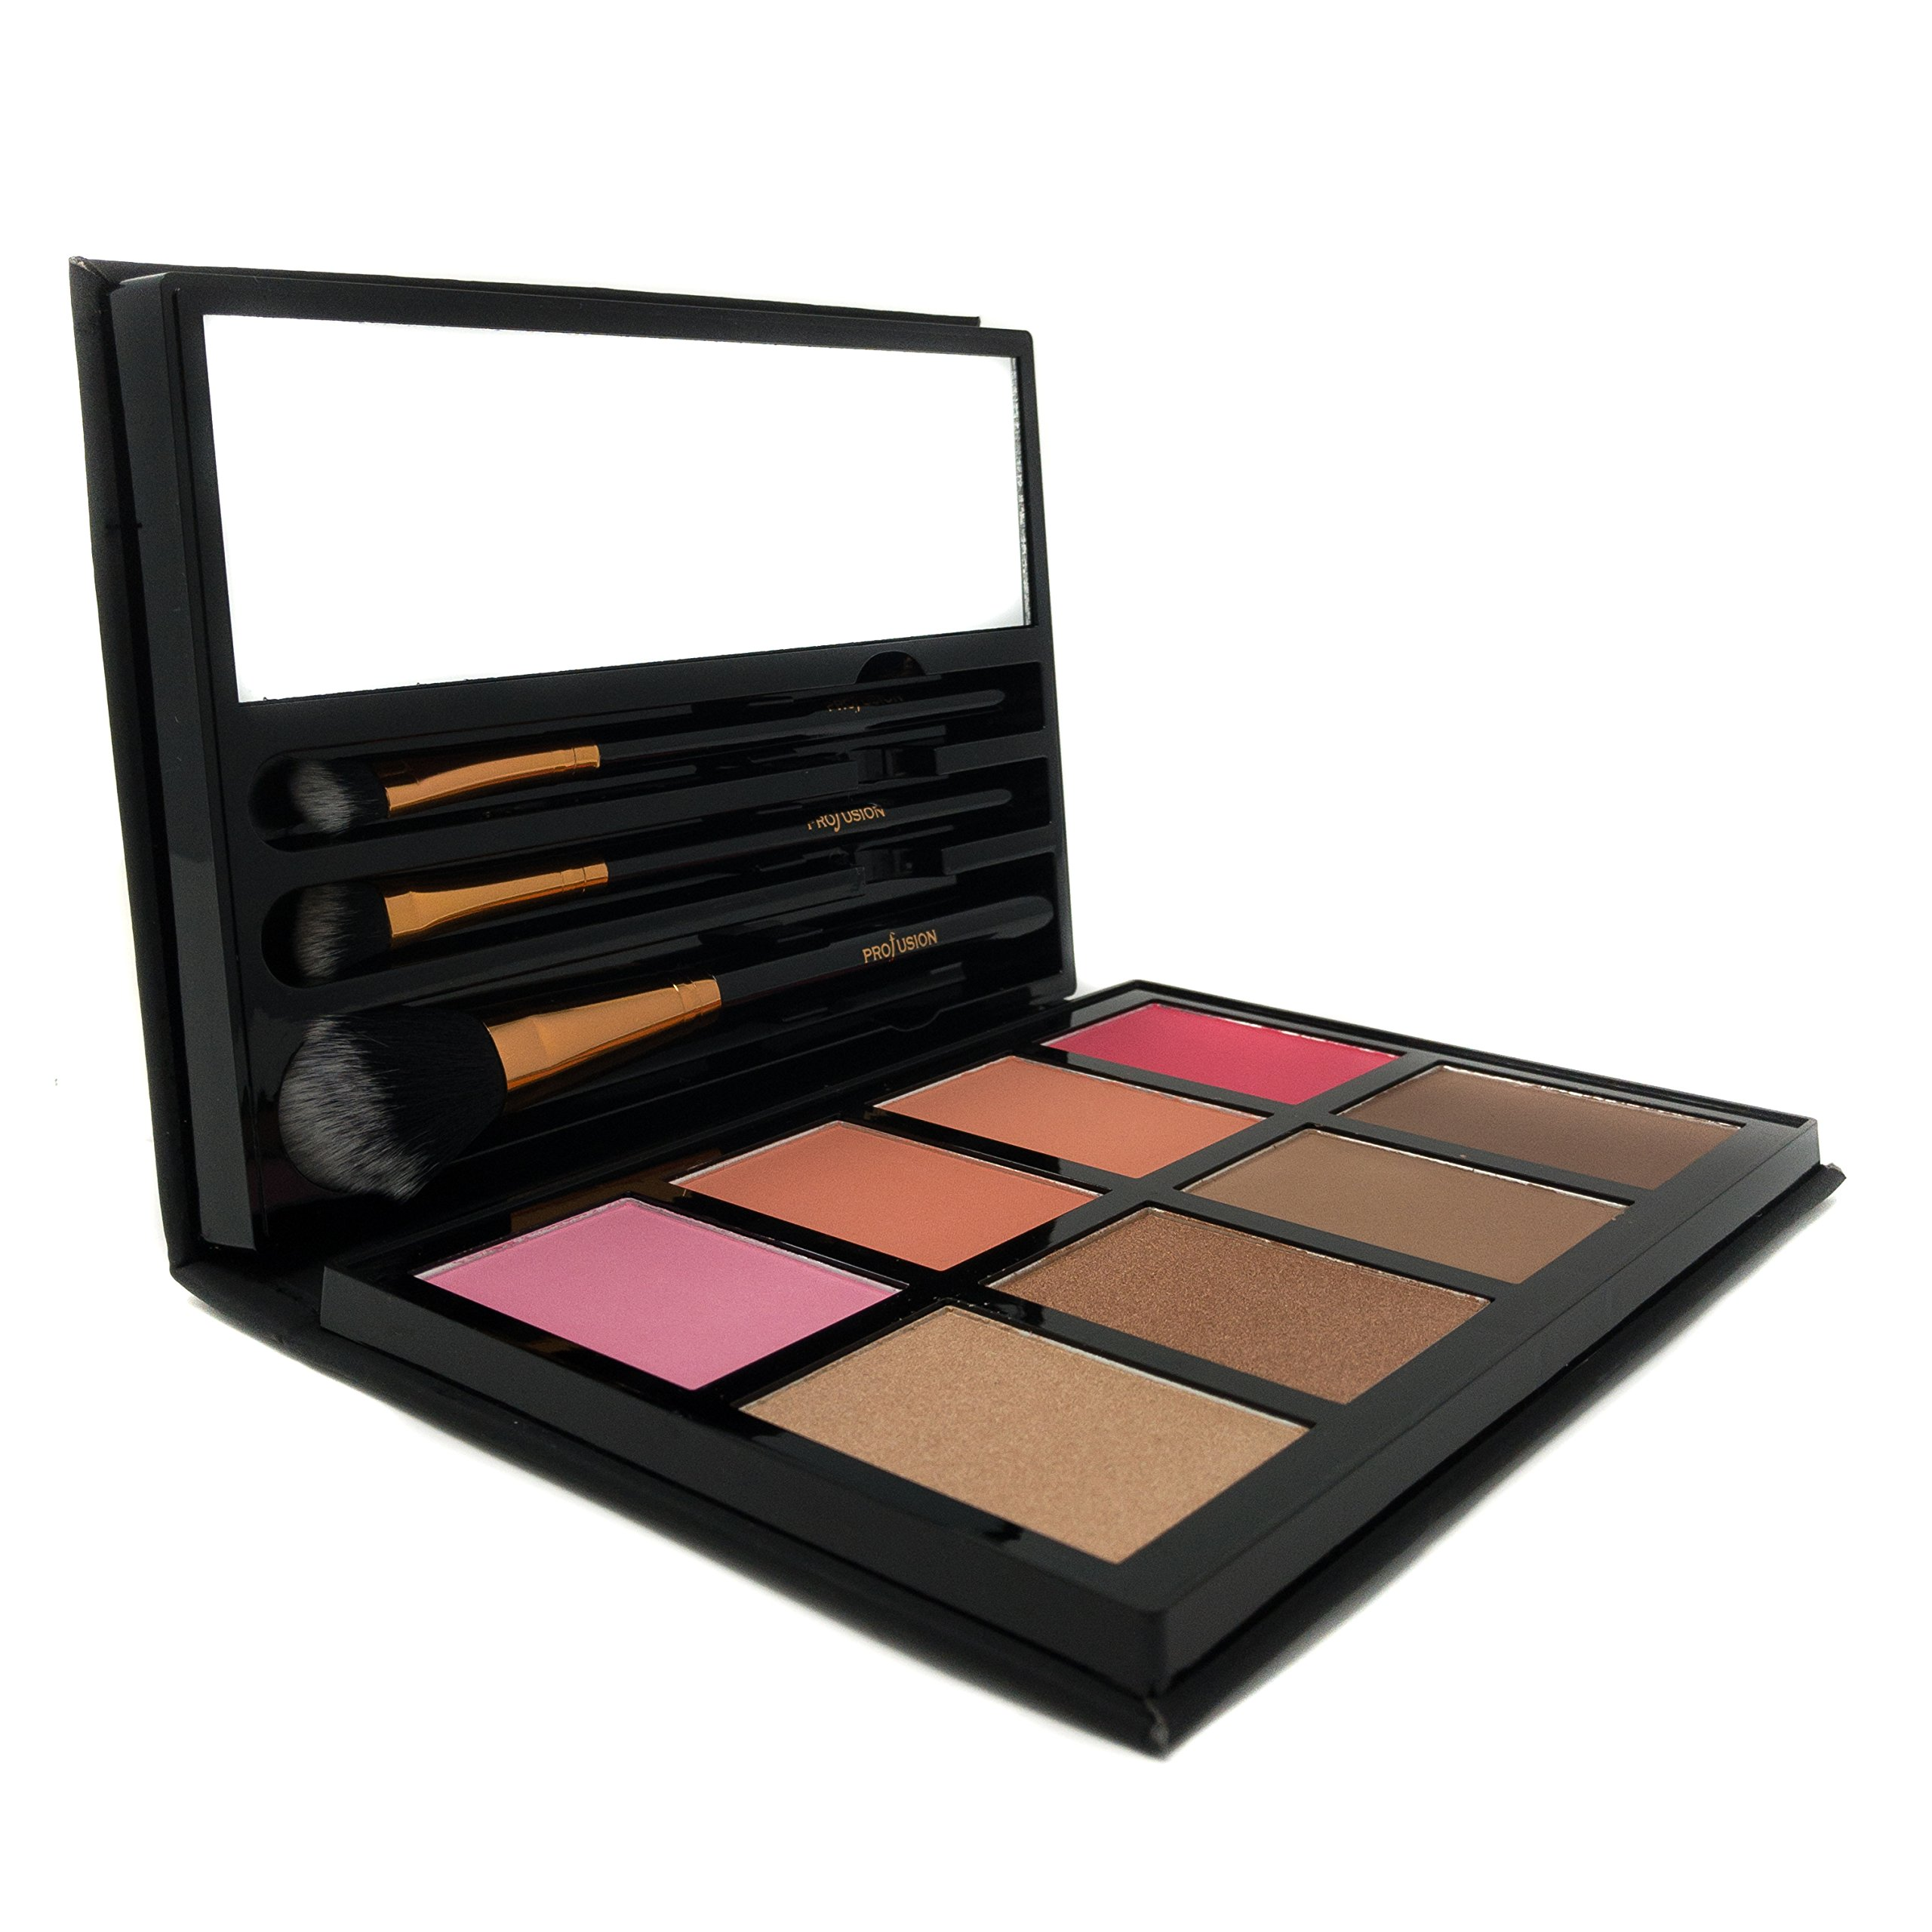 Profusion Cosmetics - Blush & Bronzer - Professional 8 Color Palette Makeup Kit Blush Highlighter Bronzer - Nude Highlight Champagne Highlight Light Bronze Shadow Bronze Pink Warm Peach Rose Pink by Profusion Cosmetics (Image #1)